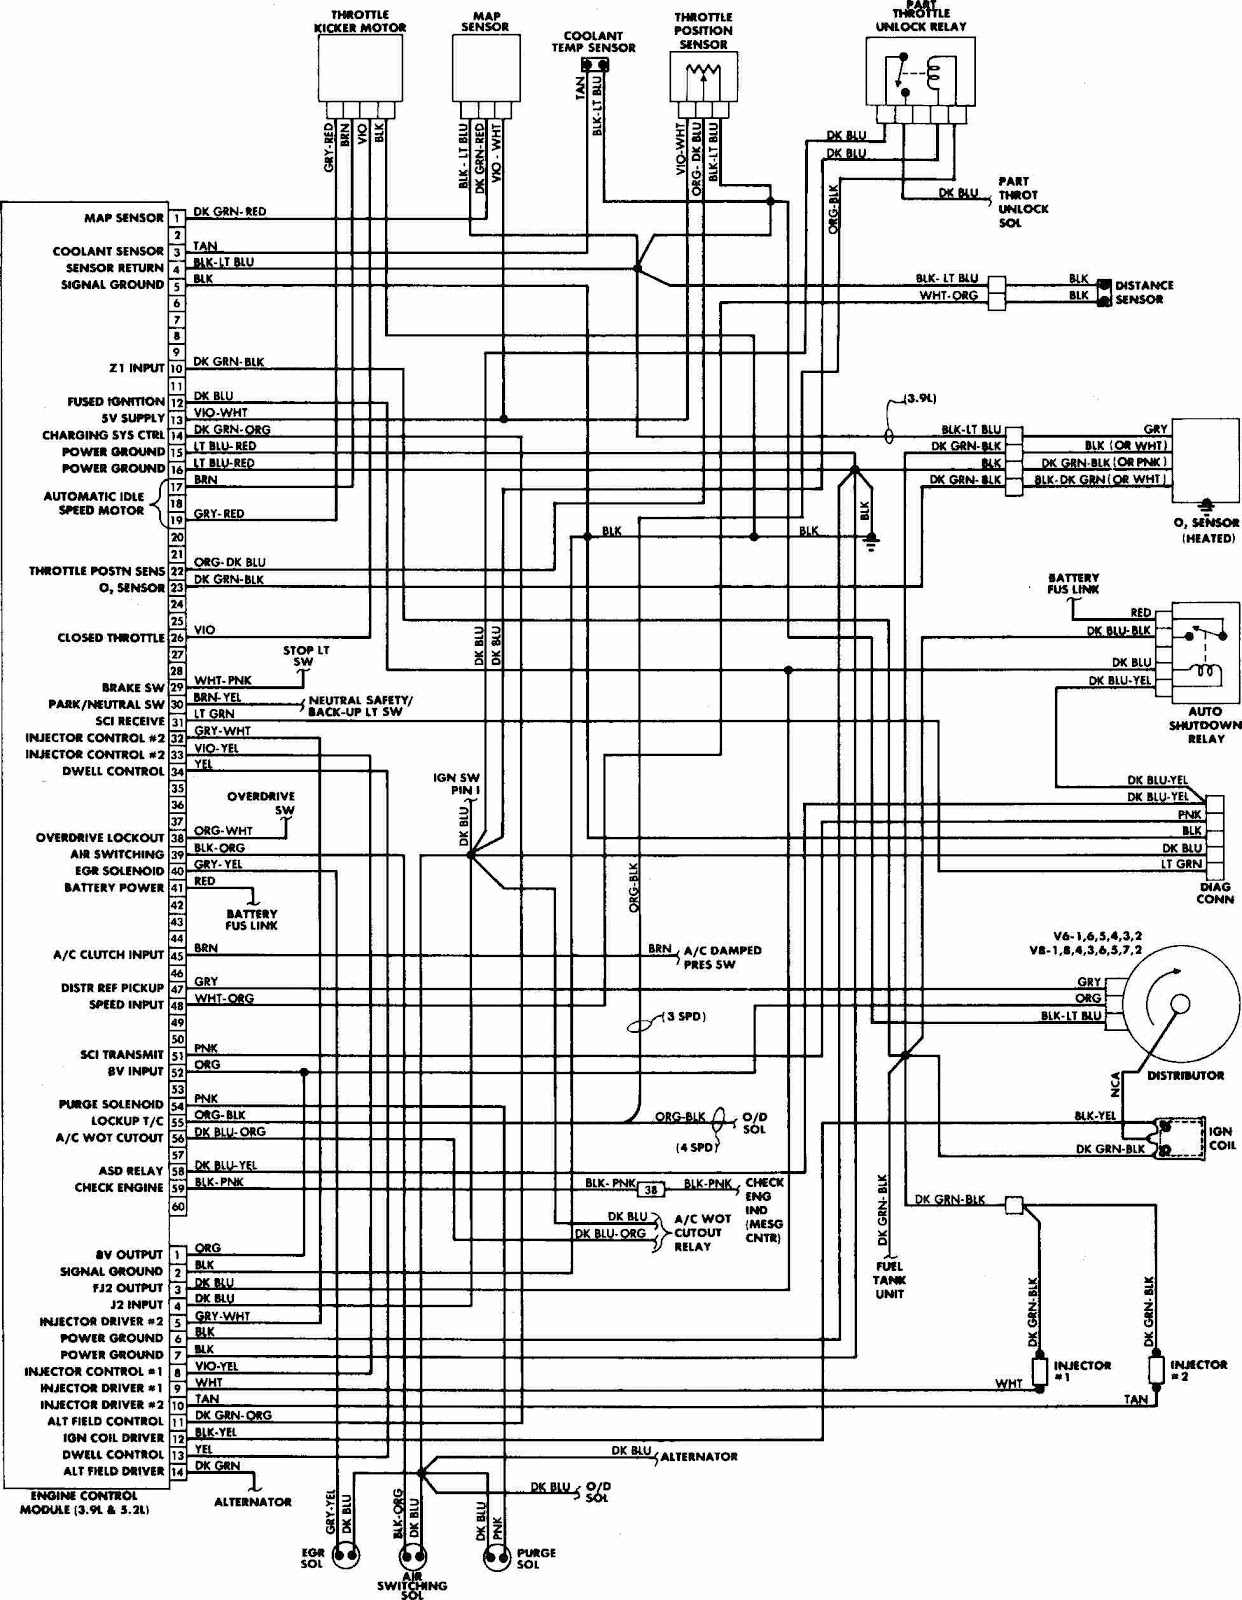 2004 Dodge Truck Wiring Diagram Further 1950 Chevy Wiring Diagram